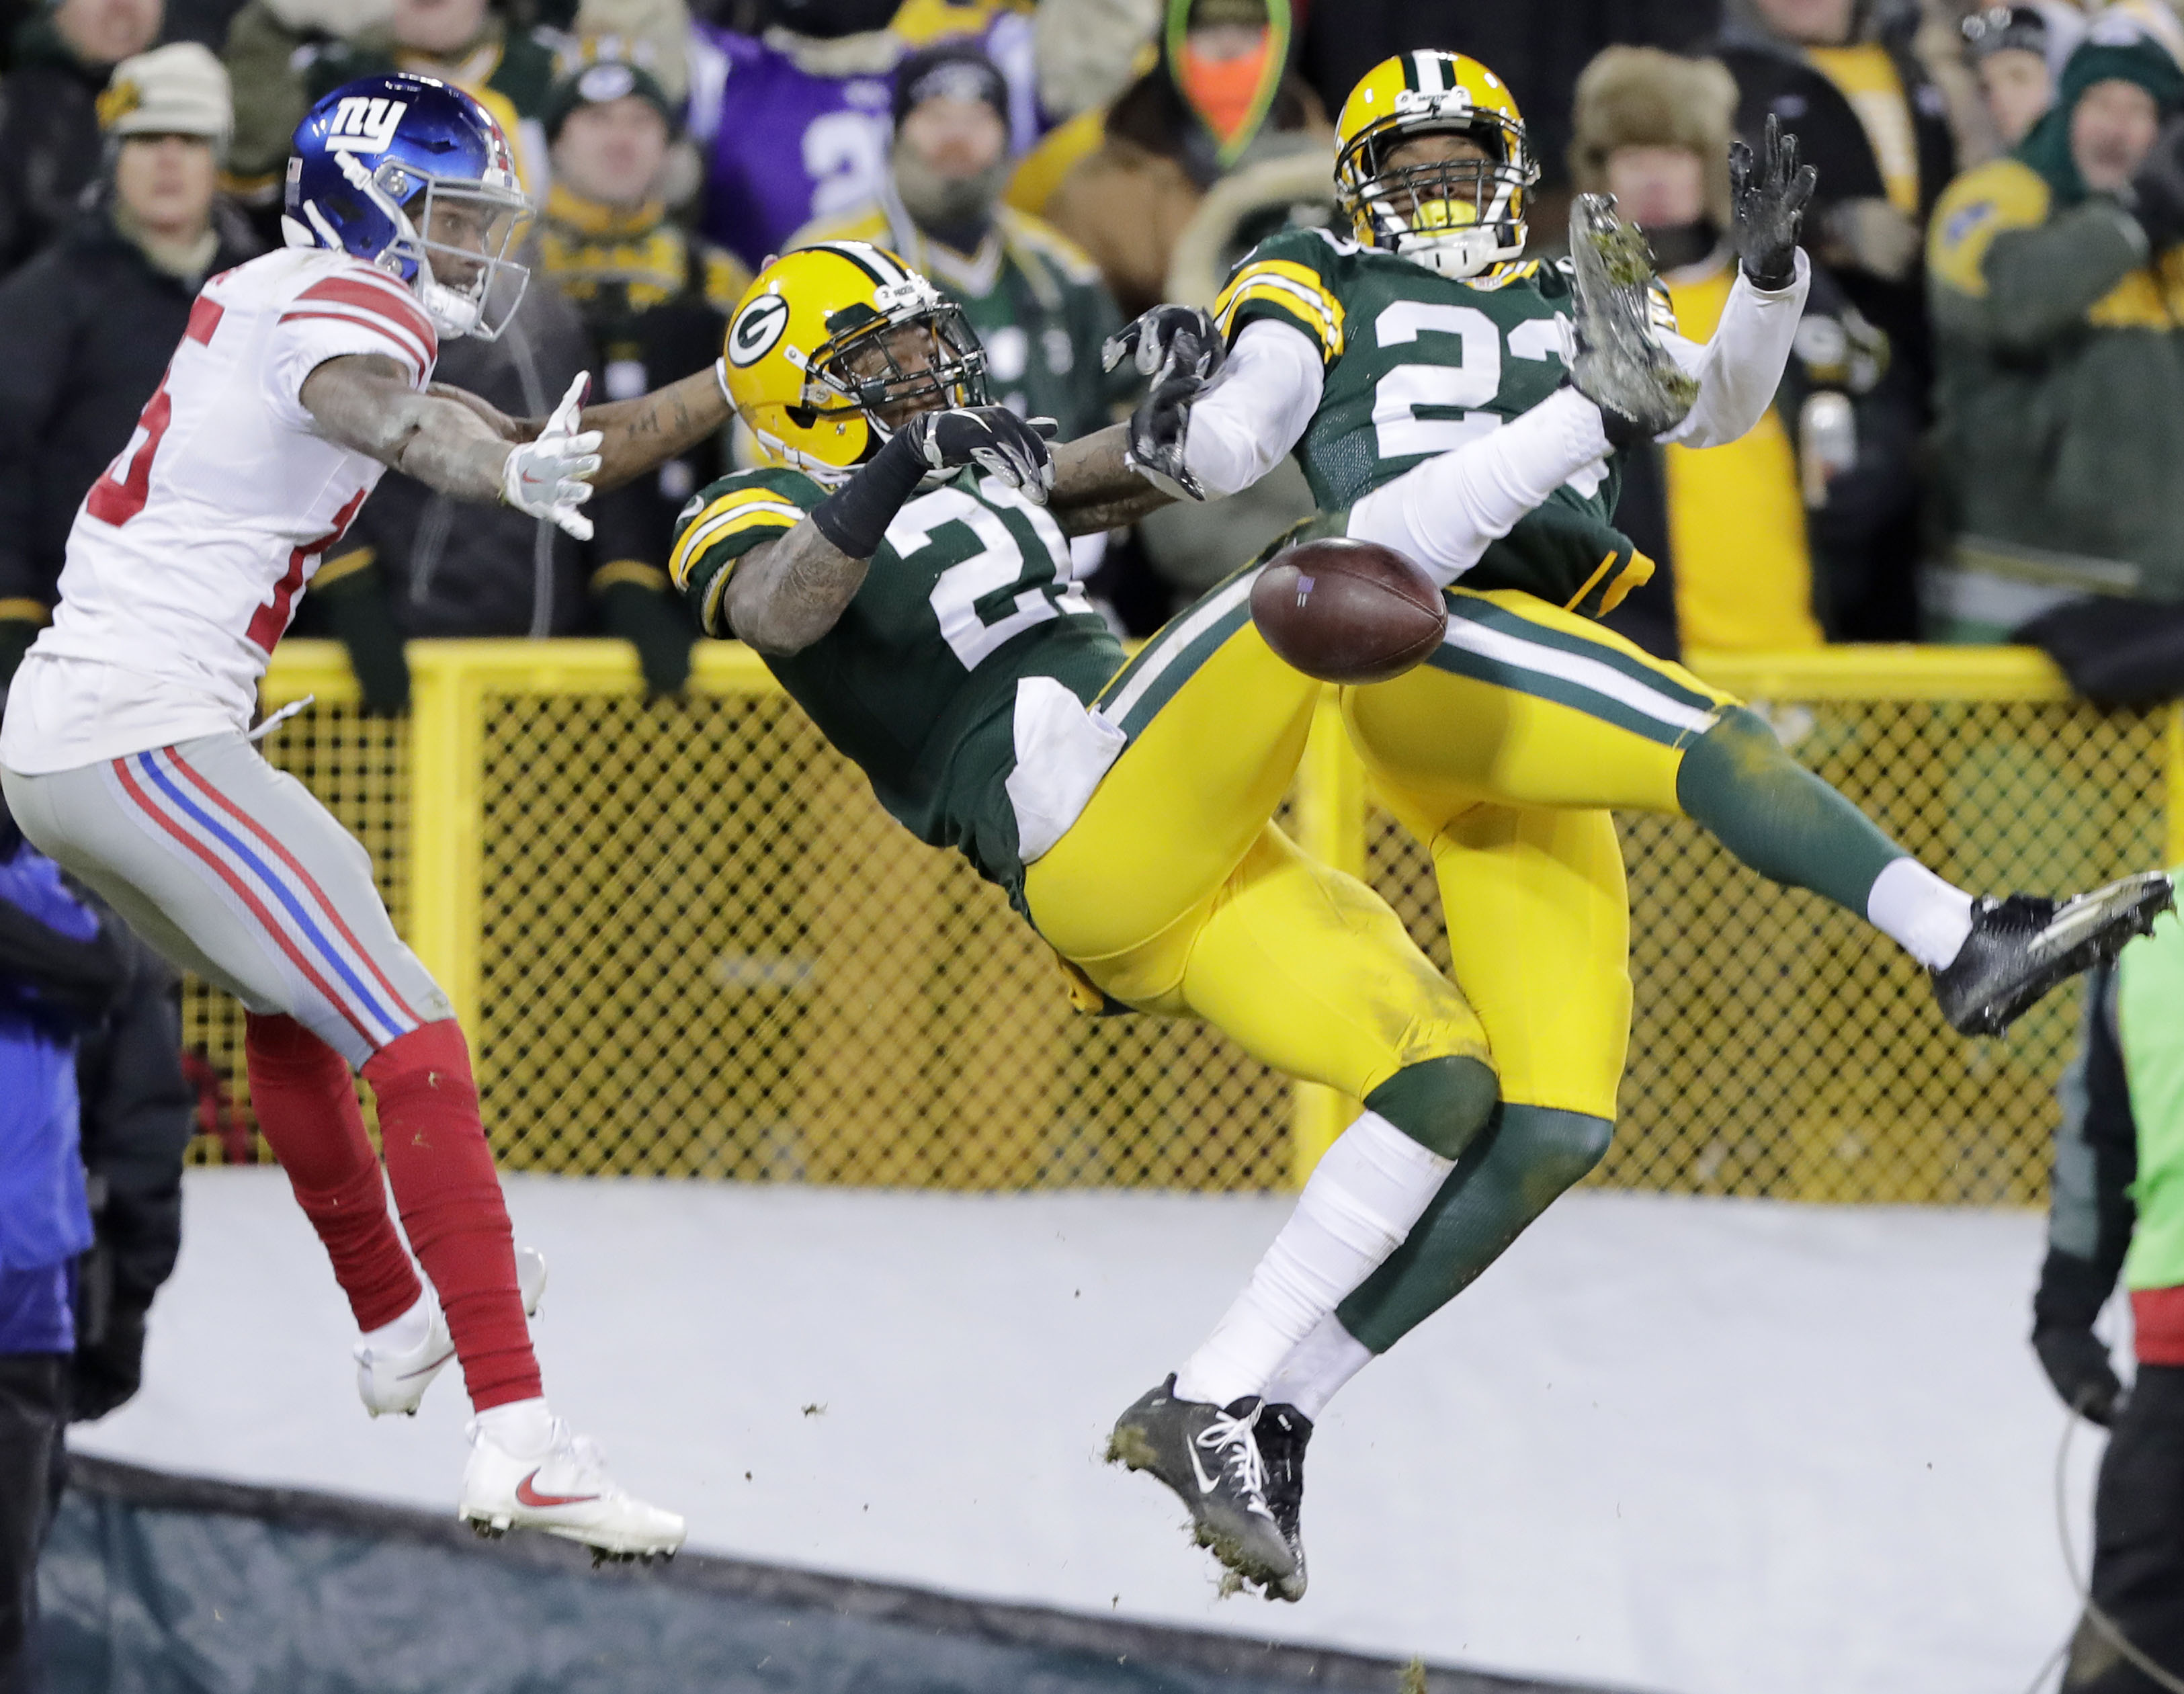 9798701-nfl-nfc-wild-card-new-york-giants-at-green-bay-packers